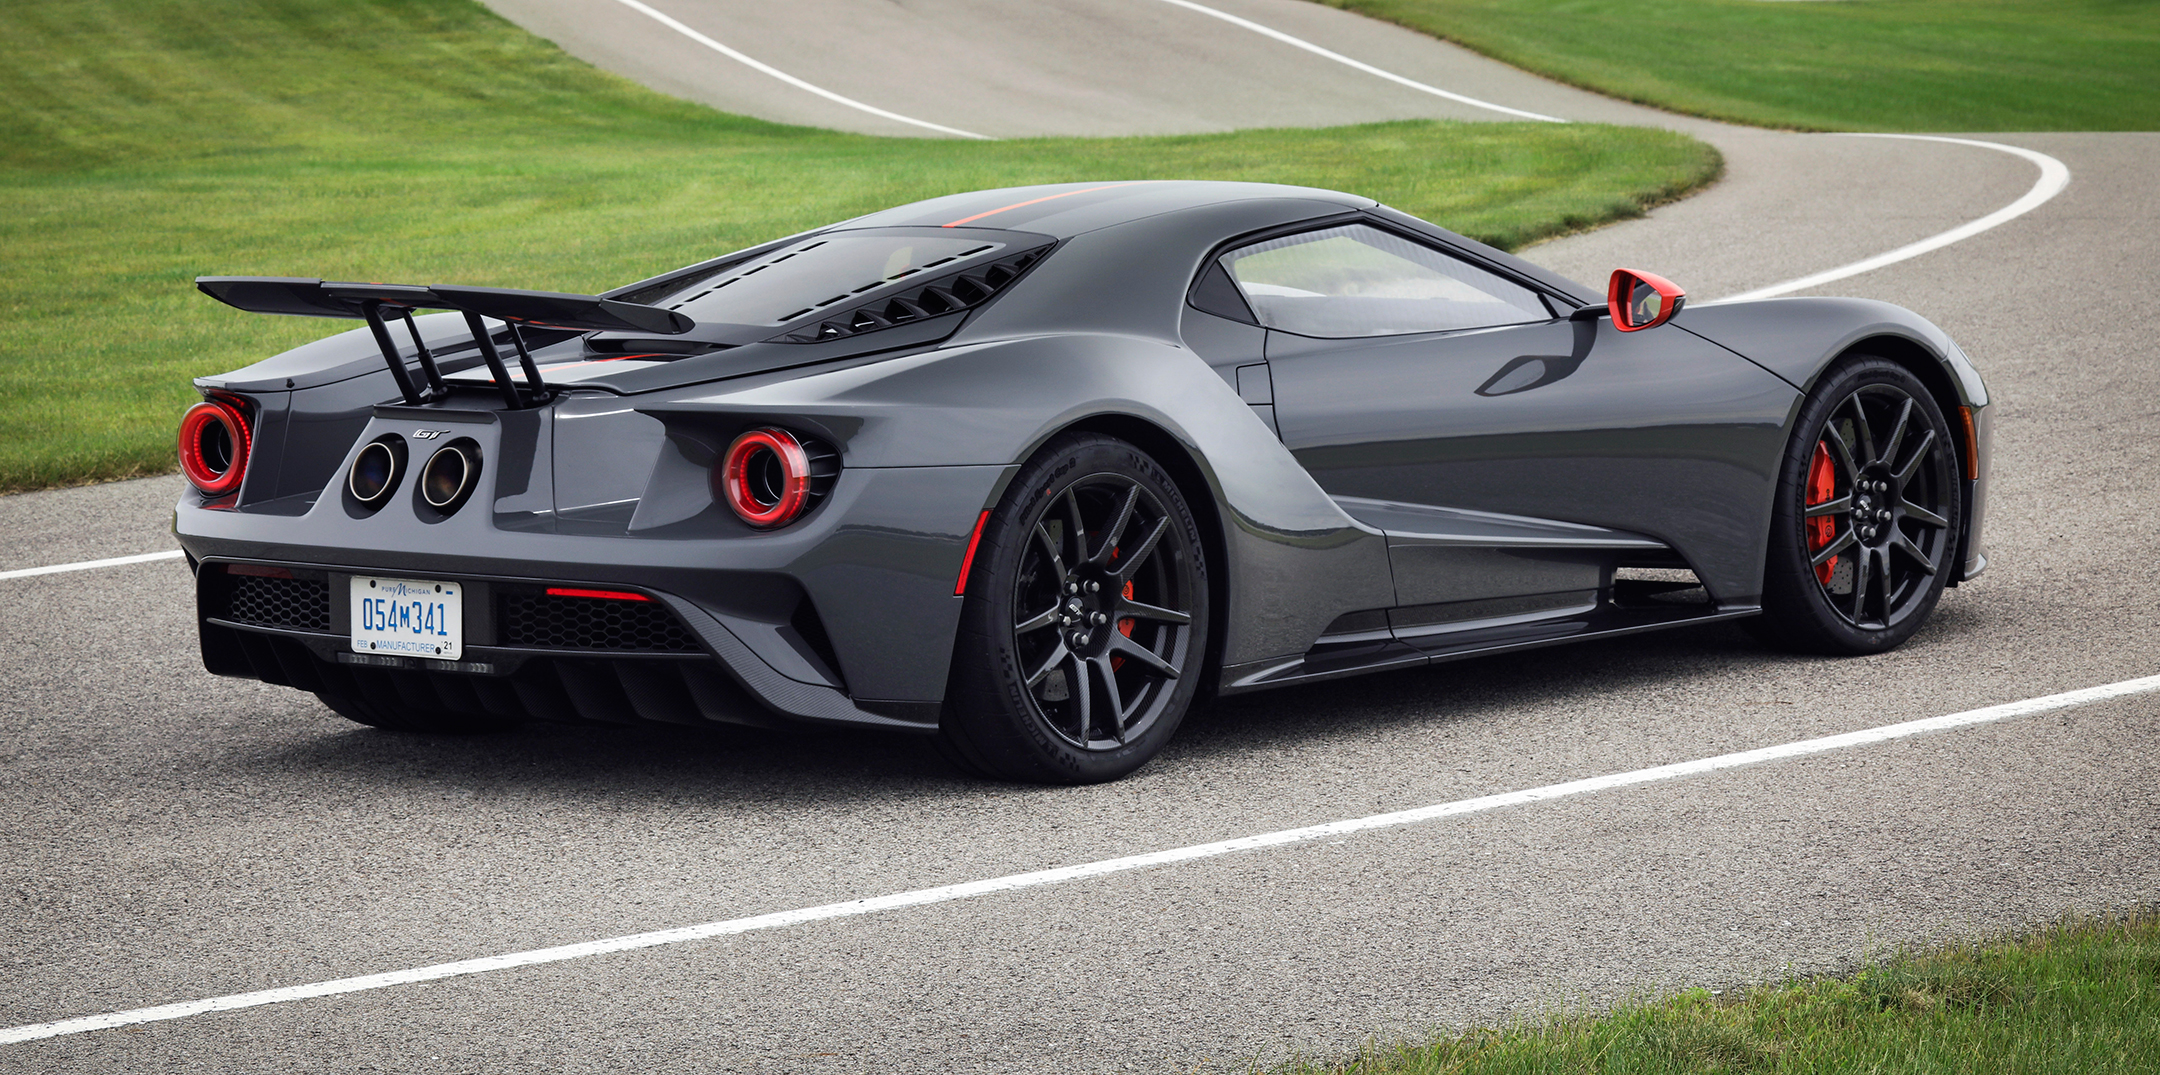 Ford GT Carbon Series - 2018 - rear side-face / profil arrière